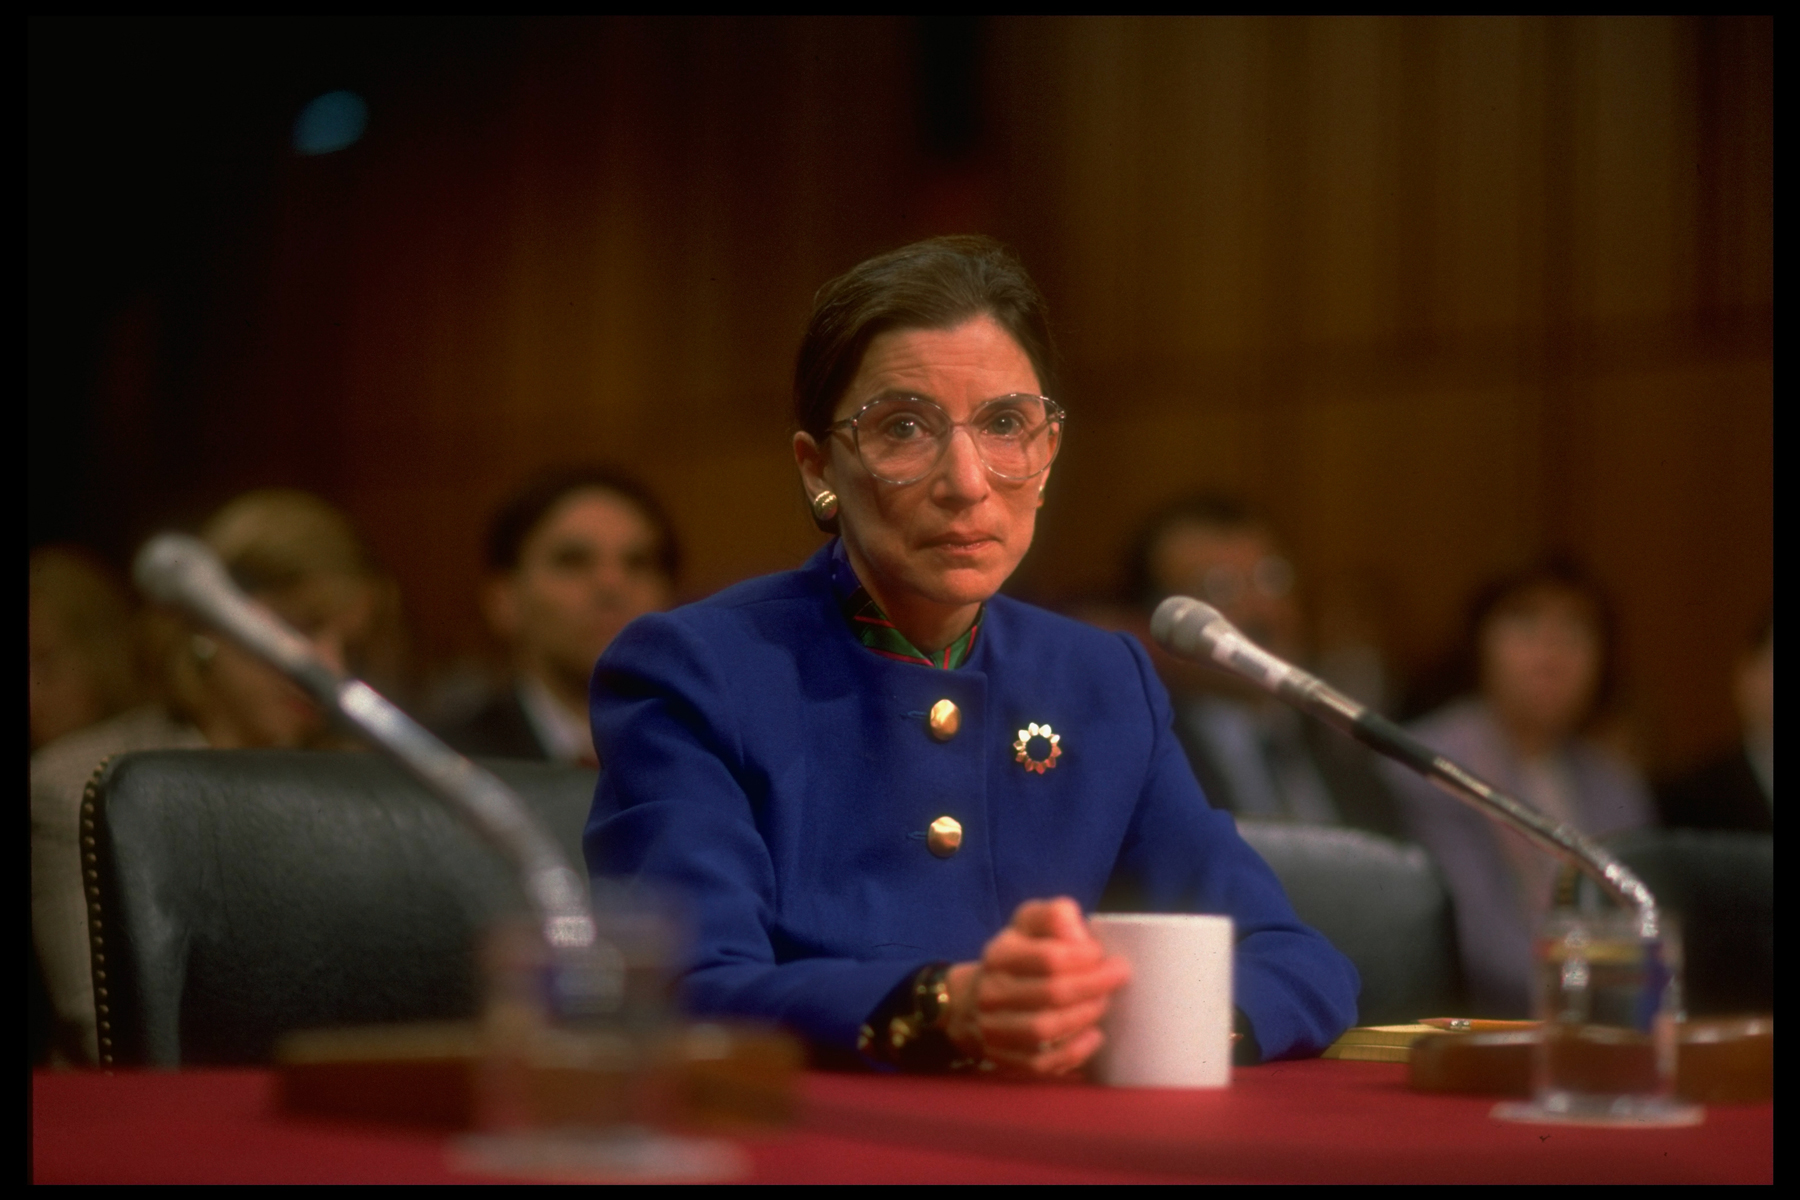 Supreme Court Justice nominee Ruth Bader Ginsburg testifying before Sen. Judiciary Comm. in her Capitol Hill confirmation hearing, 1993.